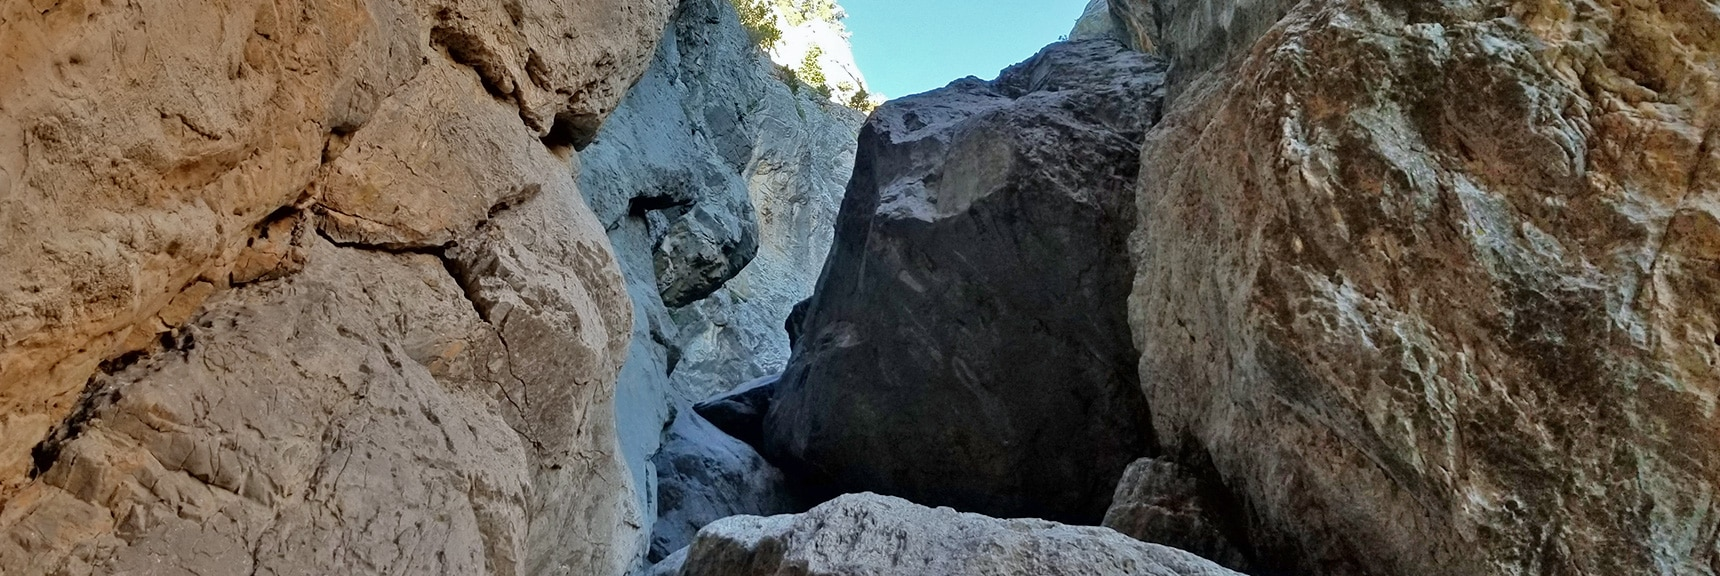 Main Climbing Crack Above Robbers Roost Trail | Robbers Roost and Beyond | Spring Mountains, Nevada